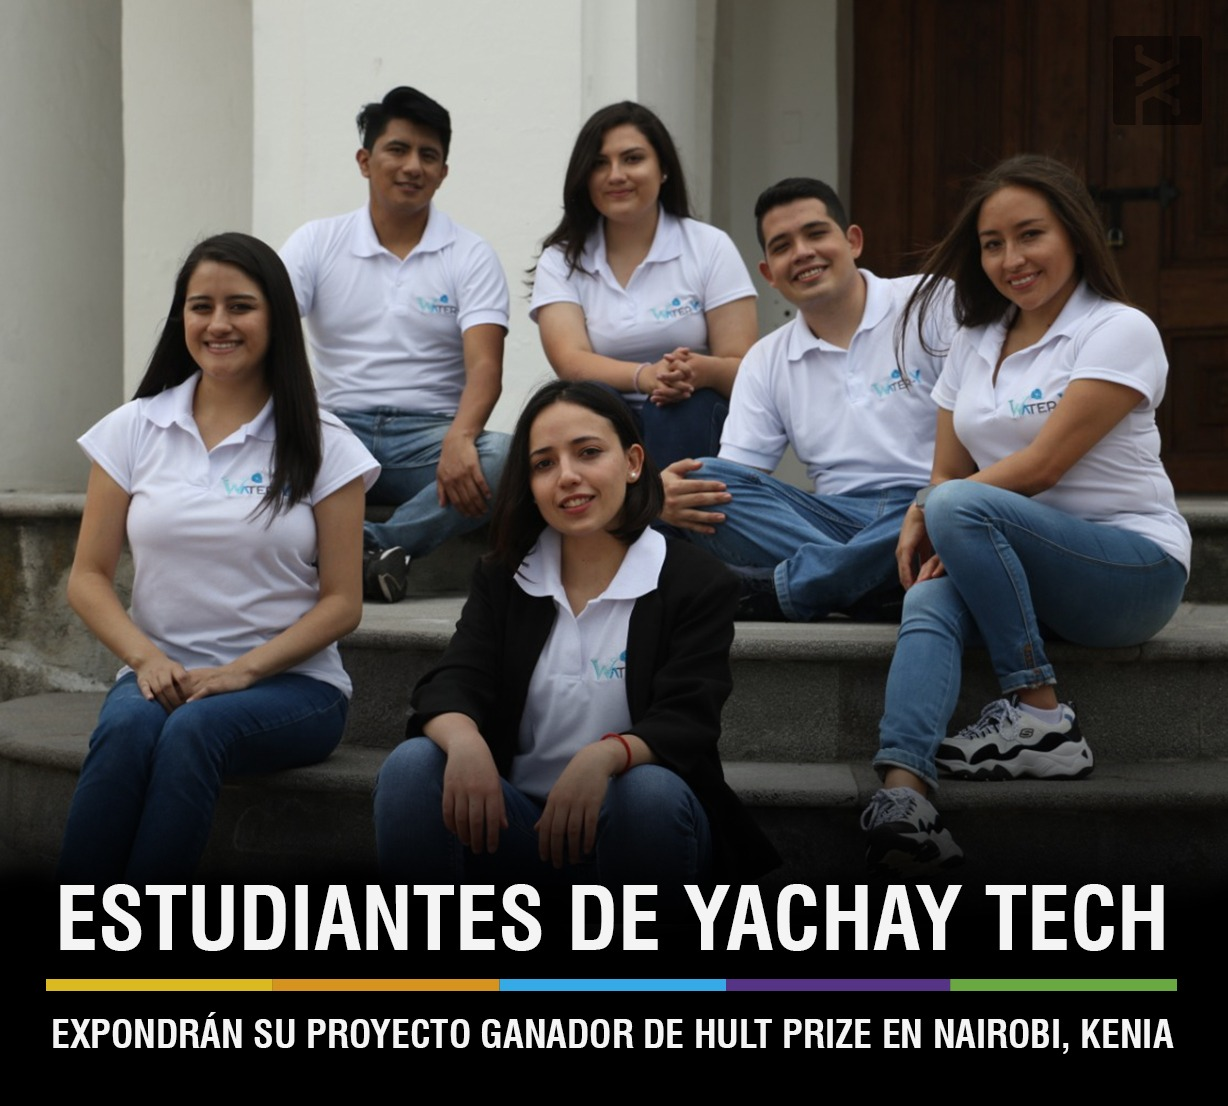 YACHAY STUDENTS WILL PRESENT THEIR HULT PRIZE- WINNING PROJECT IN NAIROBI, KENYA